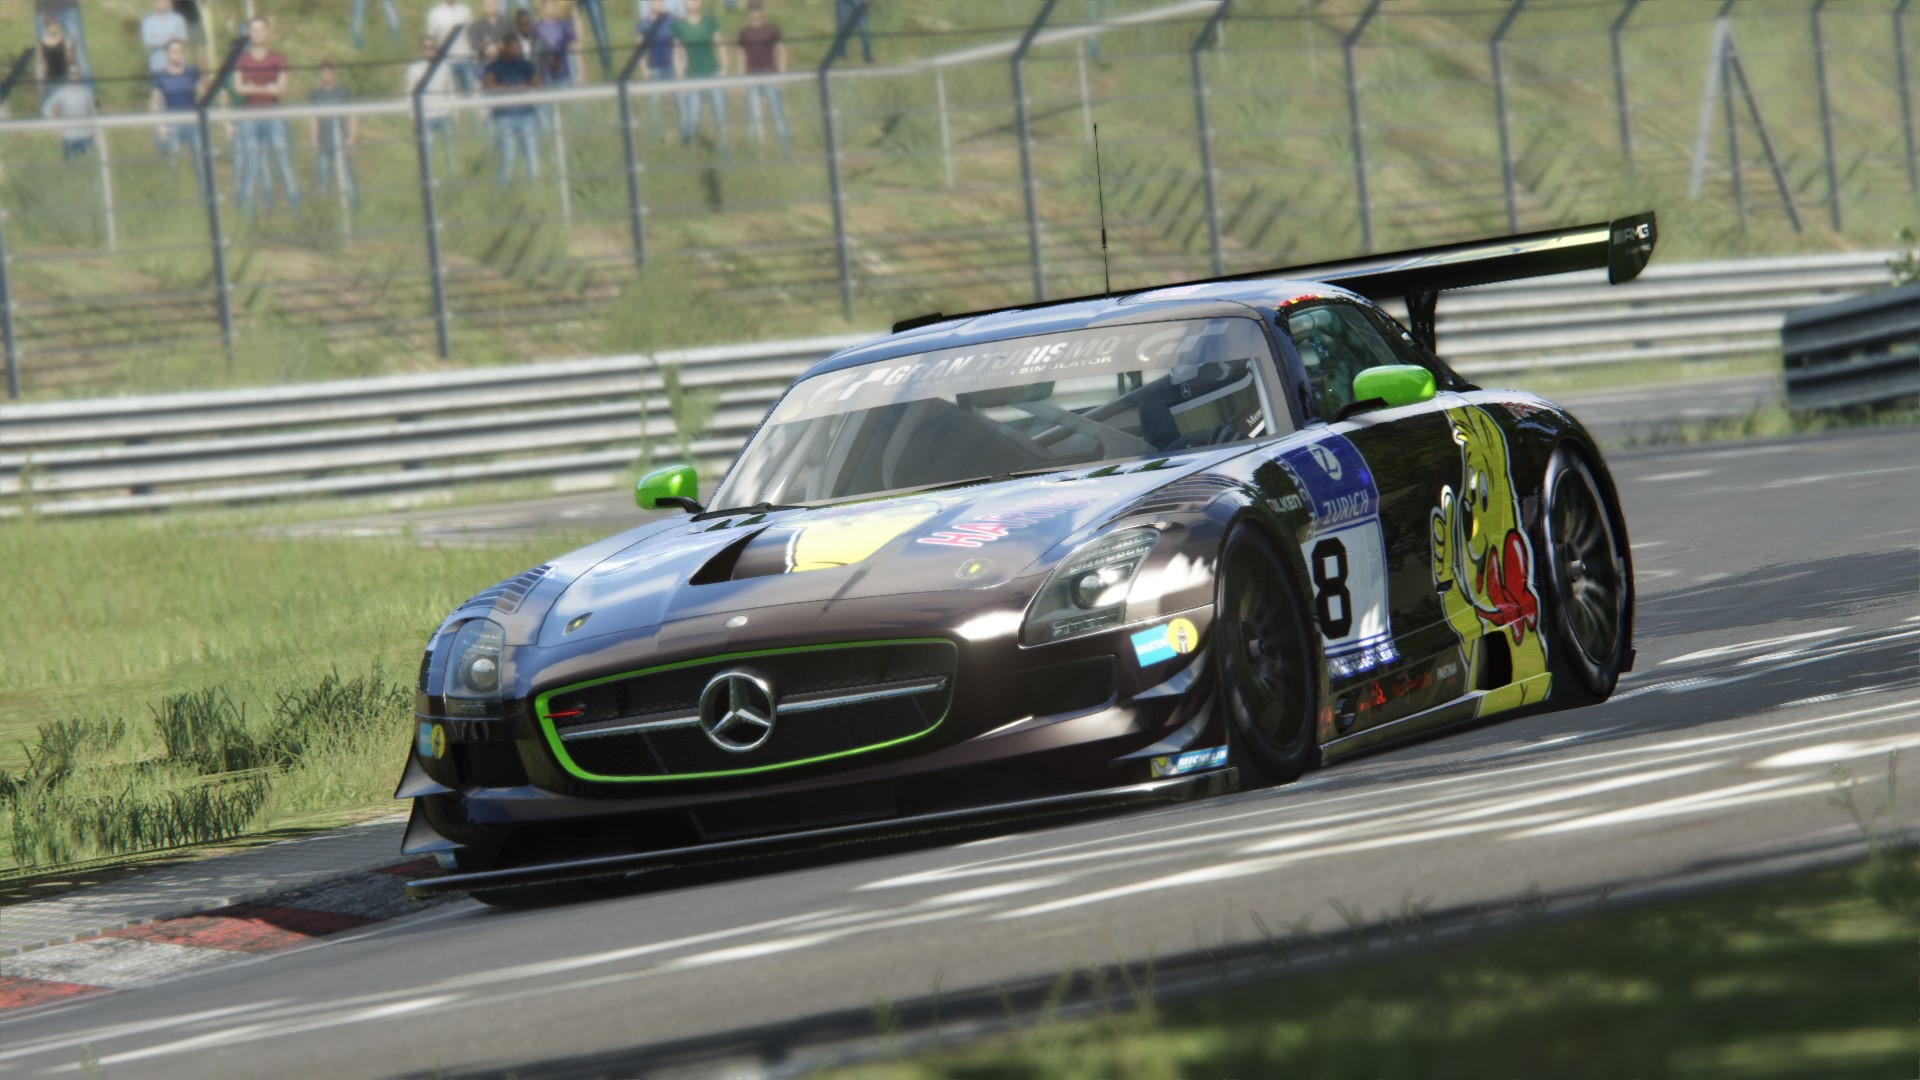 Screenshot_mercedes_sls_gt3_ks_nordschleife_11-4-116-22-53-10.jpg